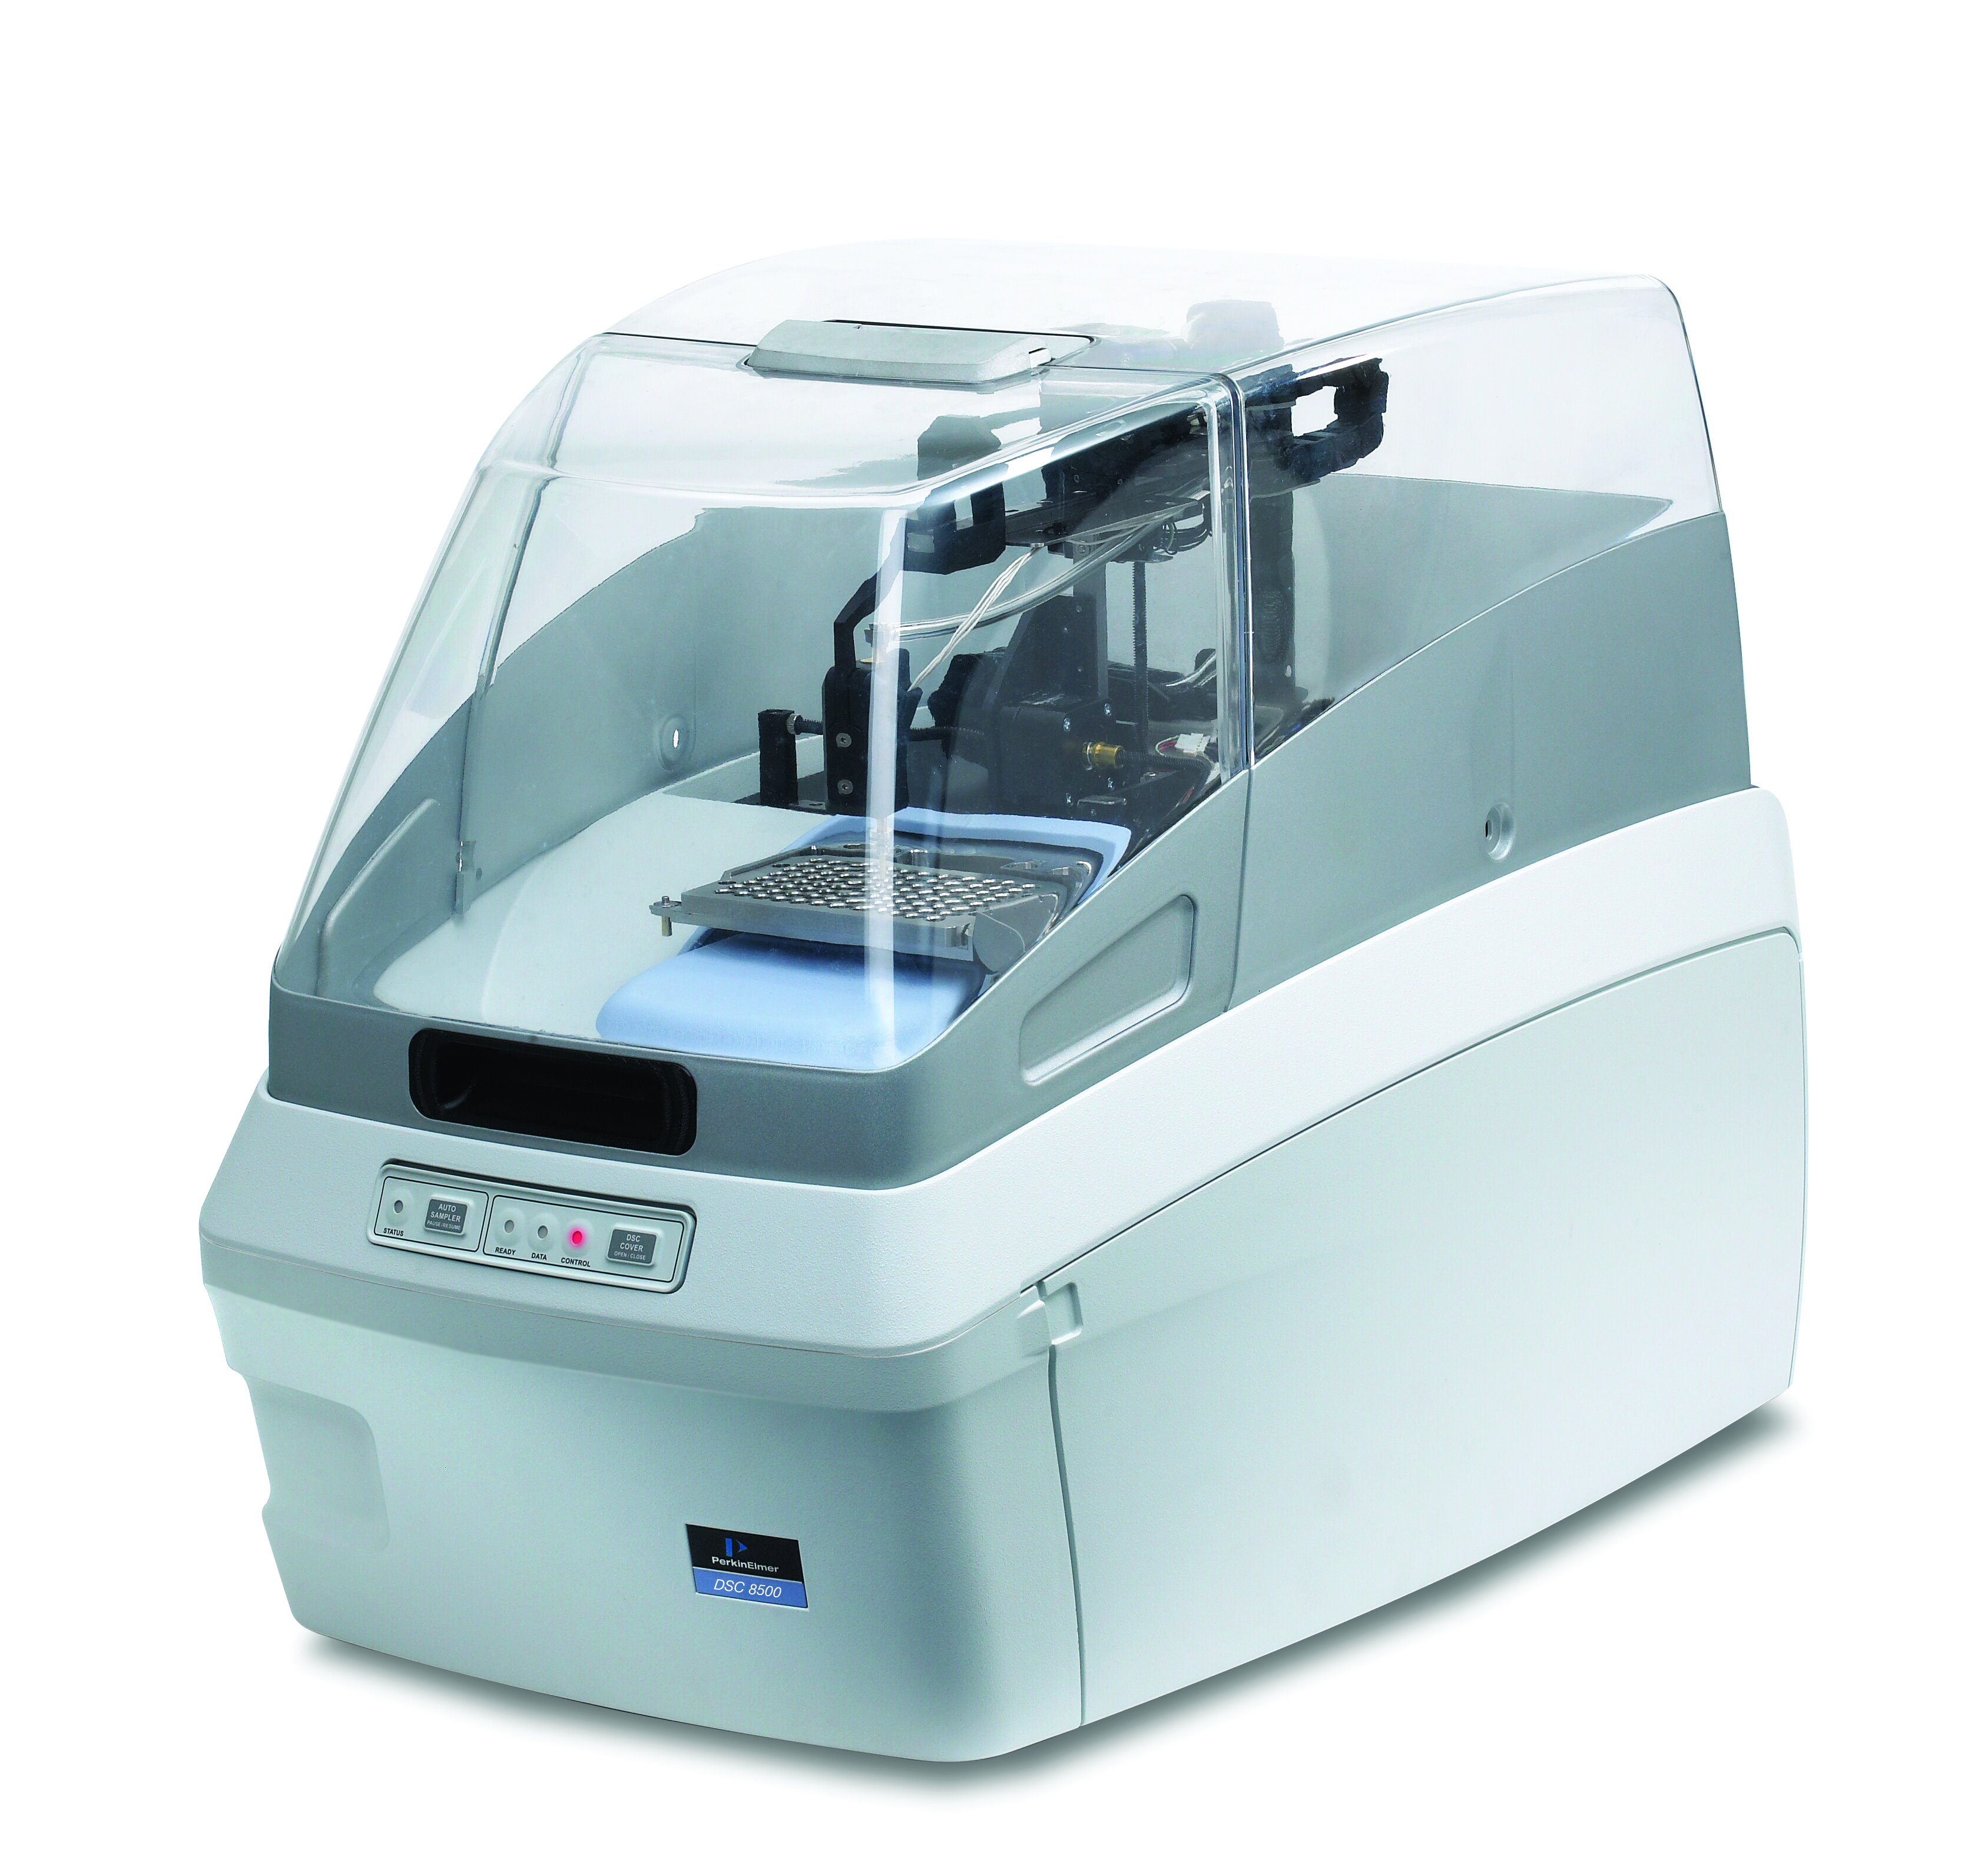 Medical Laboratory Device